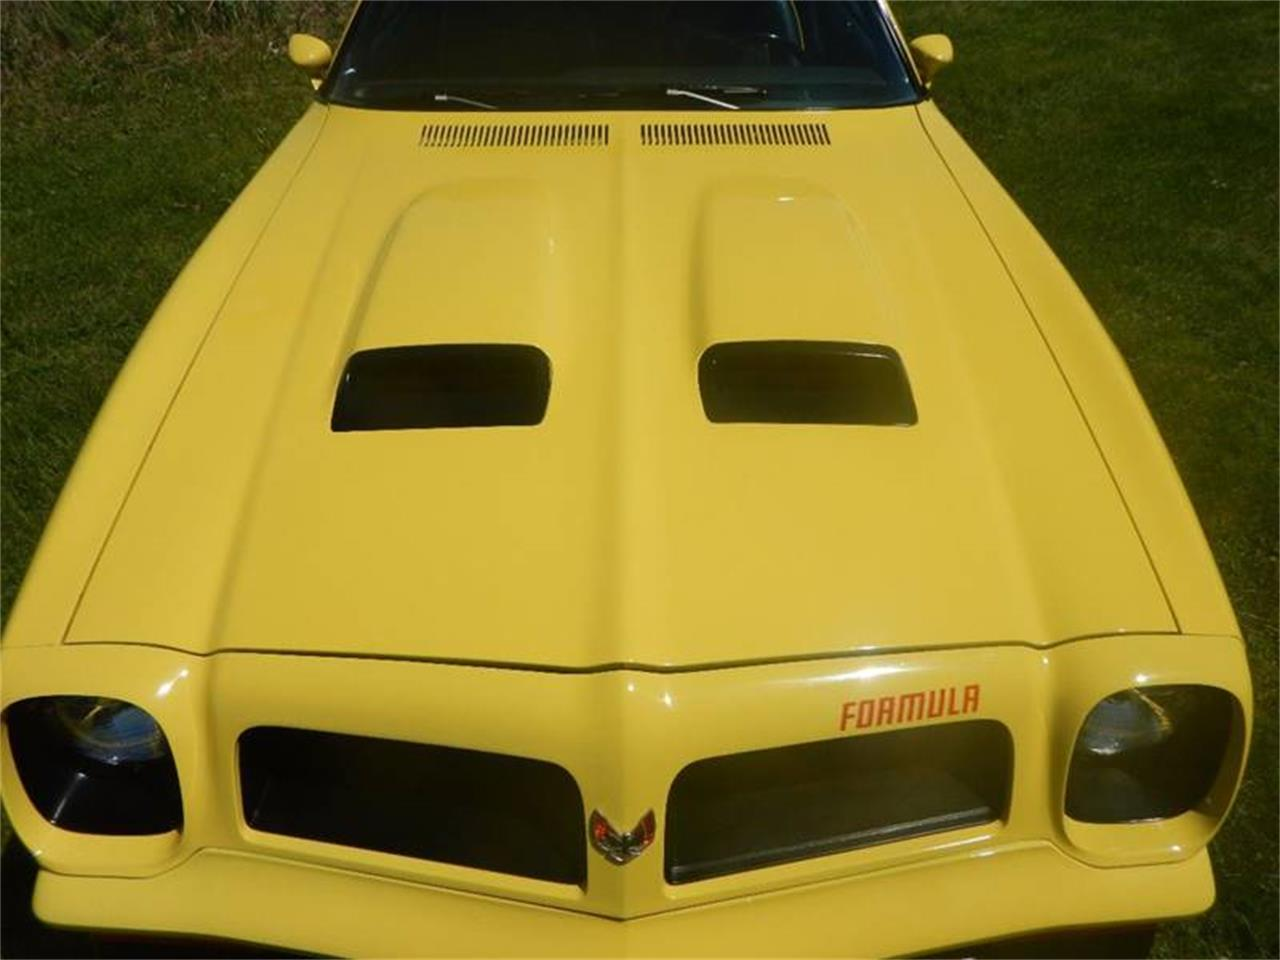 Large Picture of 1976 Pontiac Firebird located in Clarence Iowa - $21,995.00 Offered by Kinion Auto Sales & Service - Q6J2